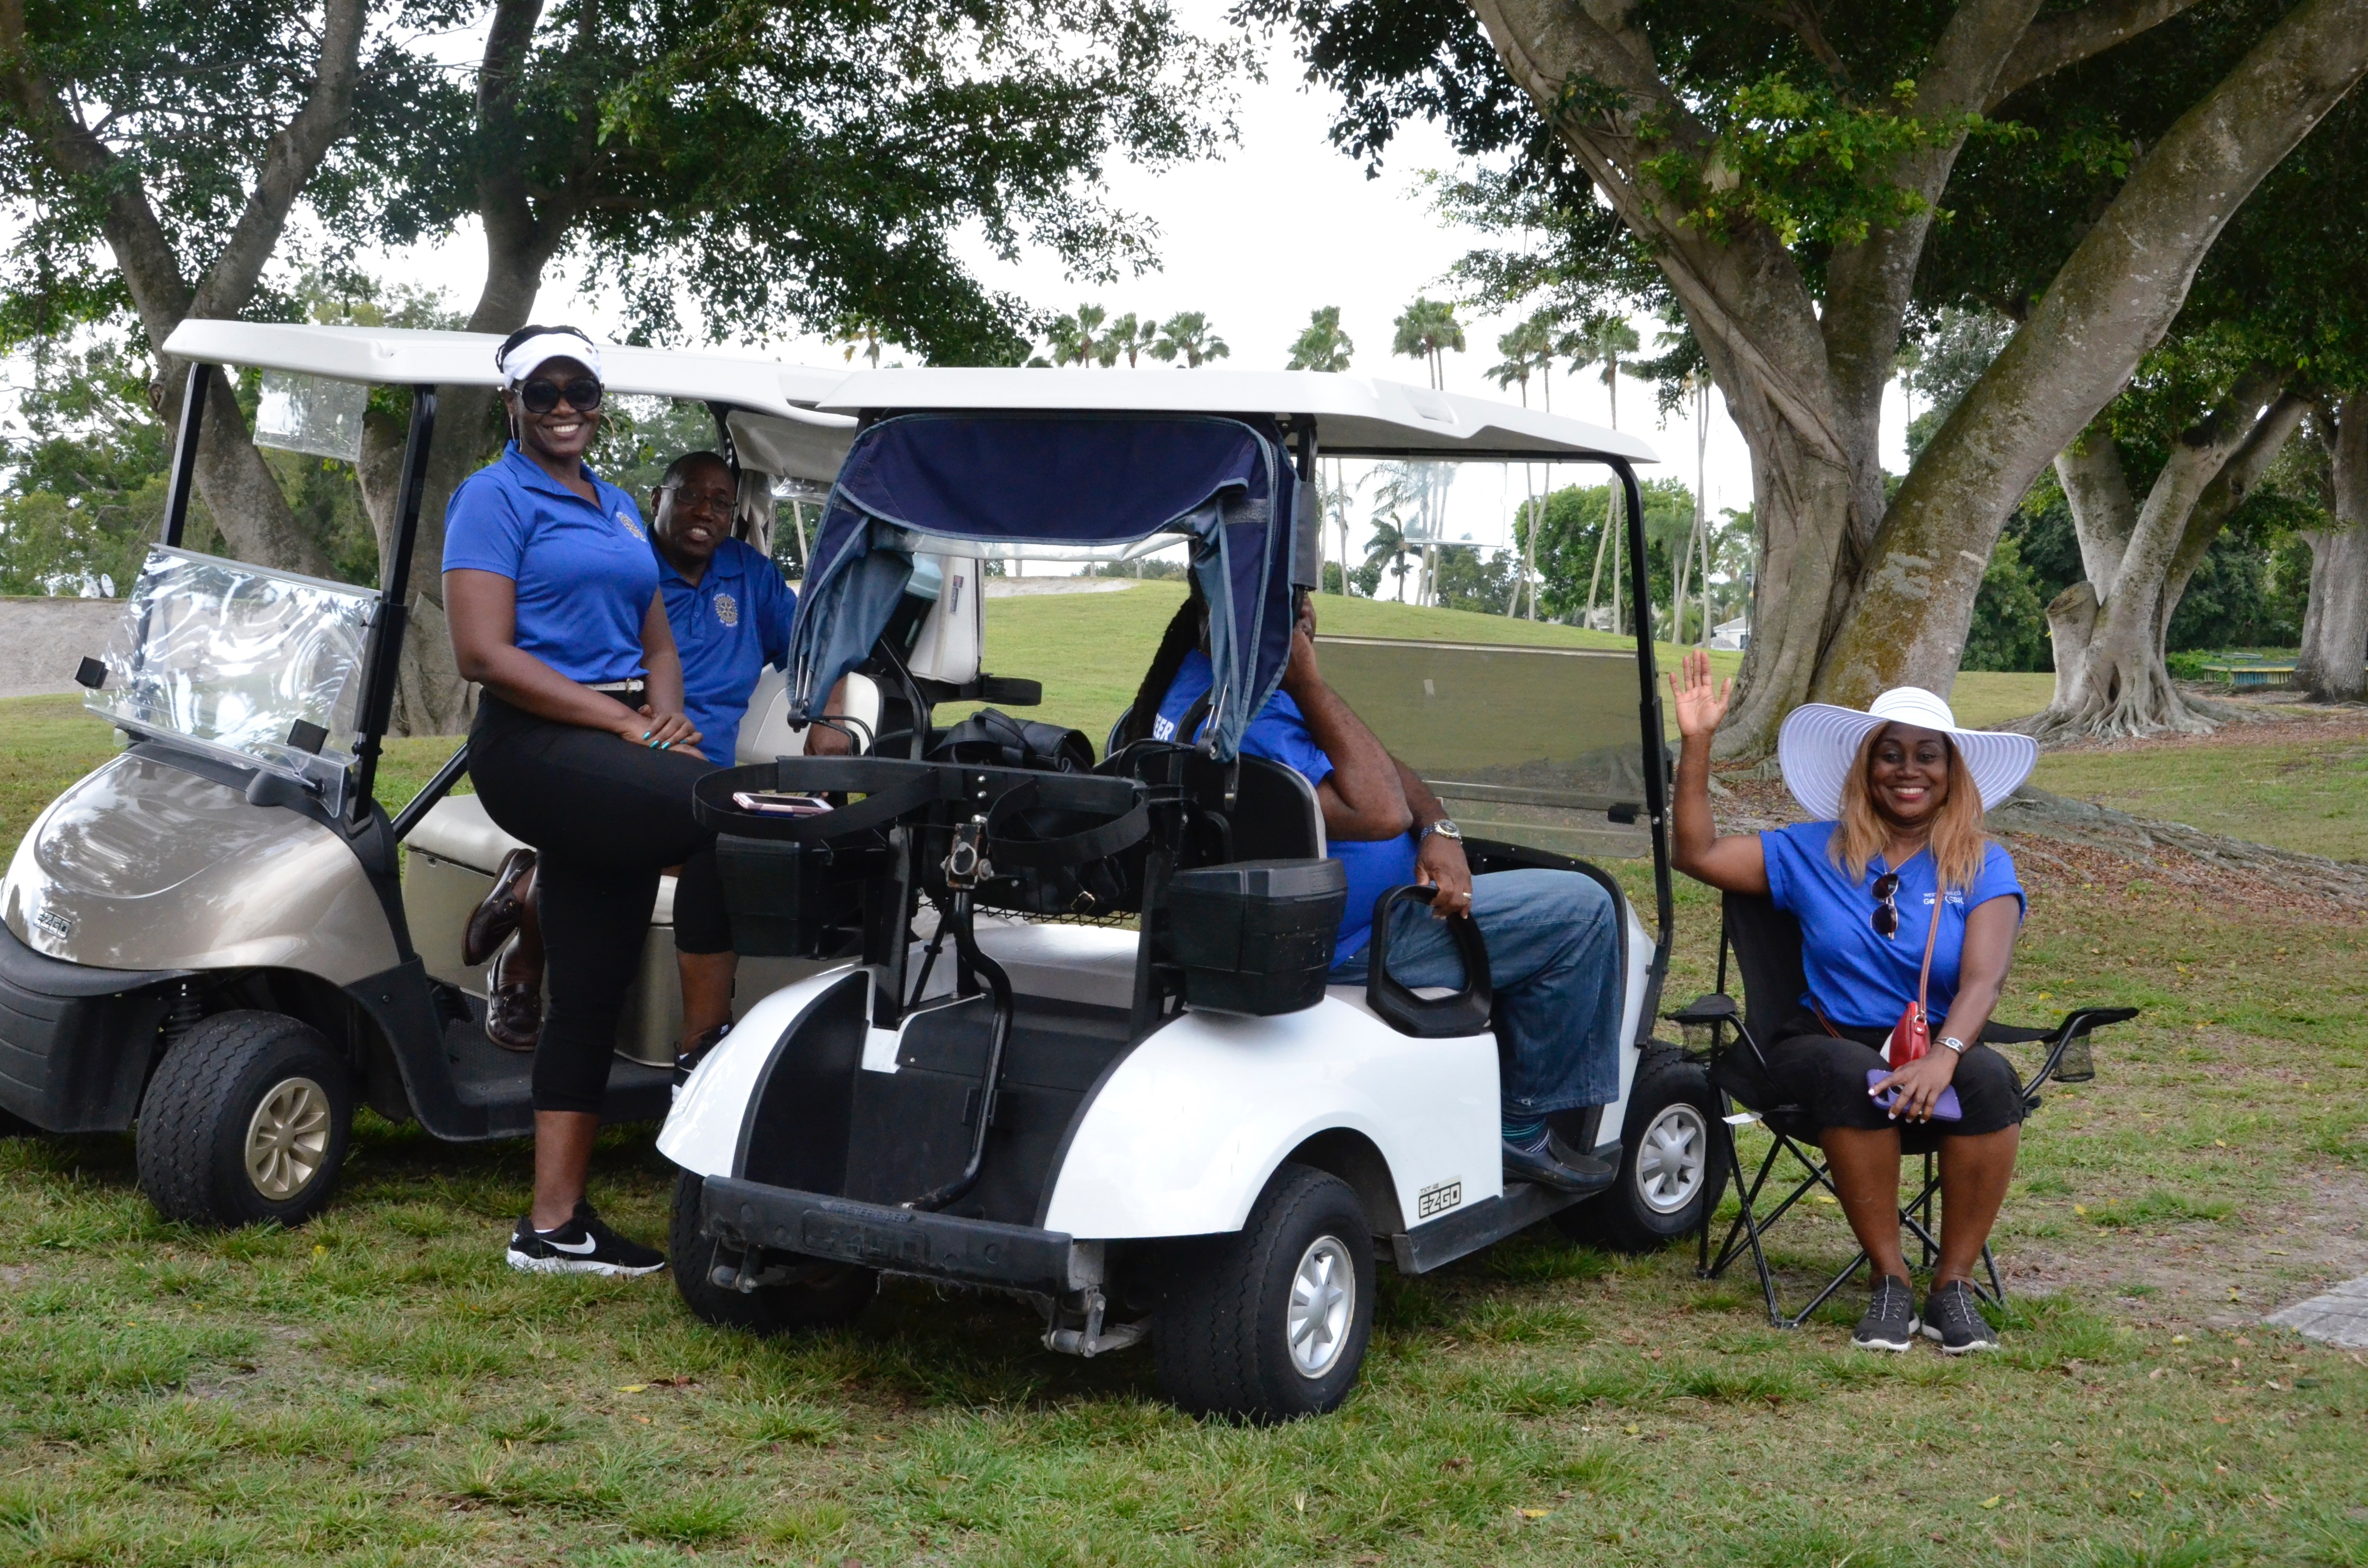 33rd Annual Rotary Golf Classic Sponsored by FHVLEGAL.COM gallery image #18